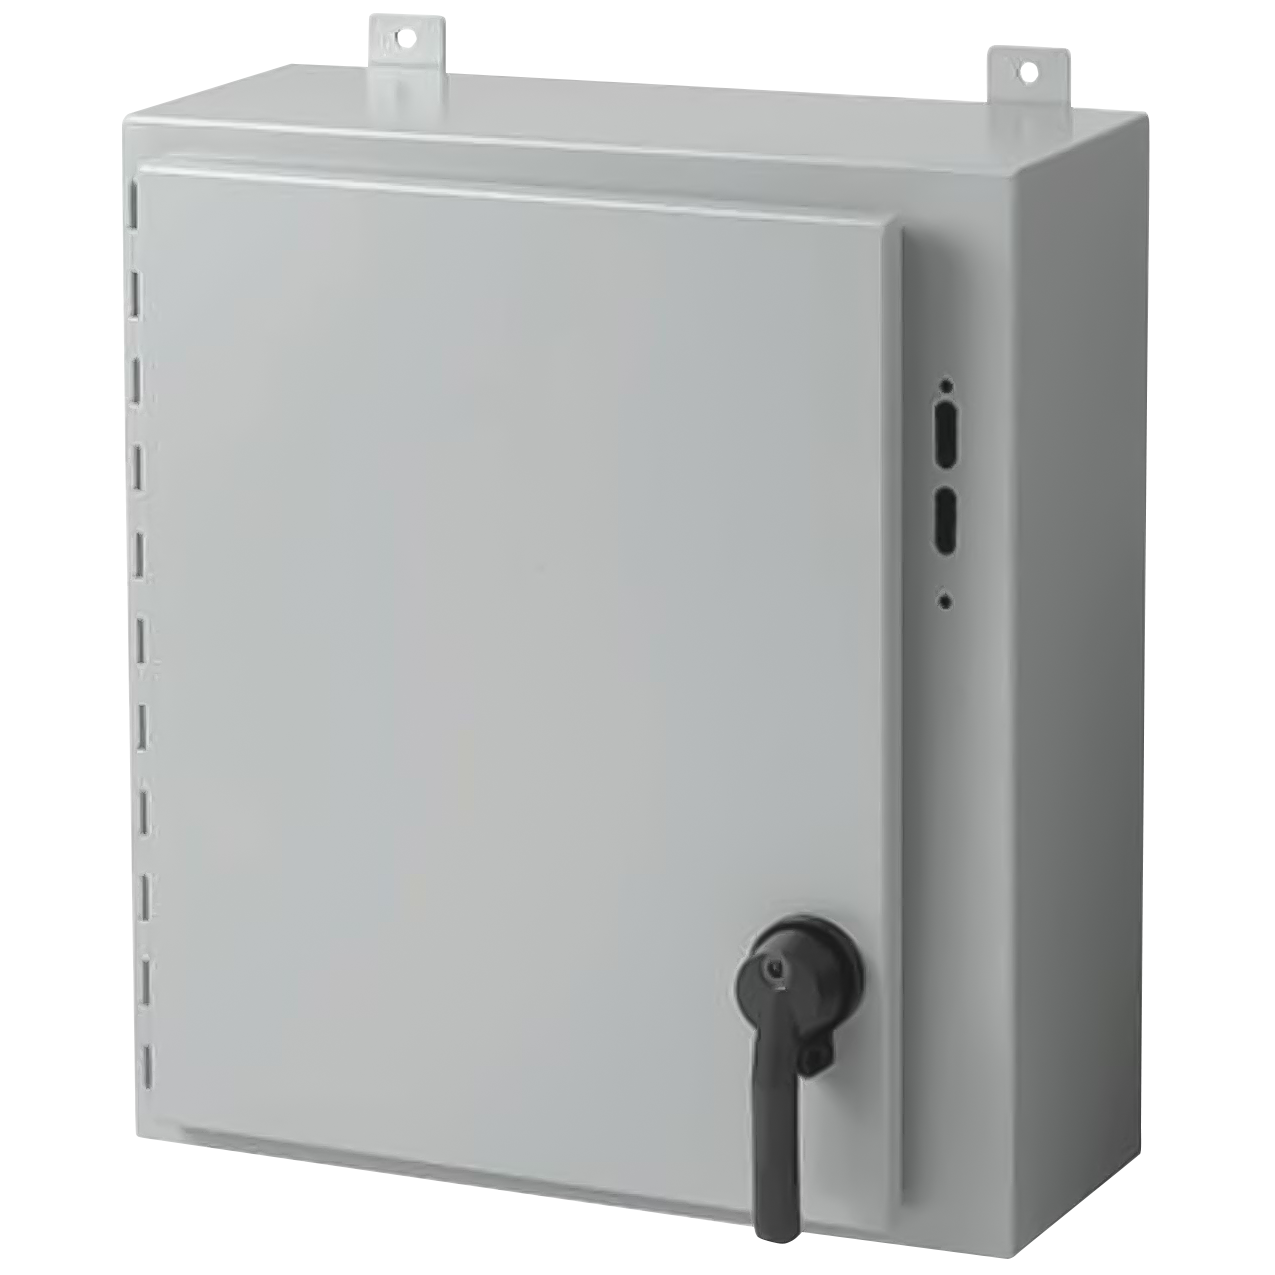 Modular Enclosure Systems